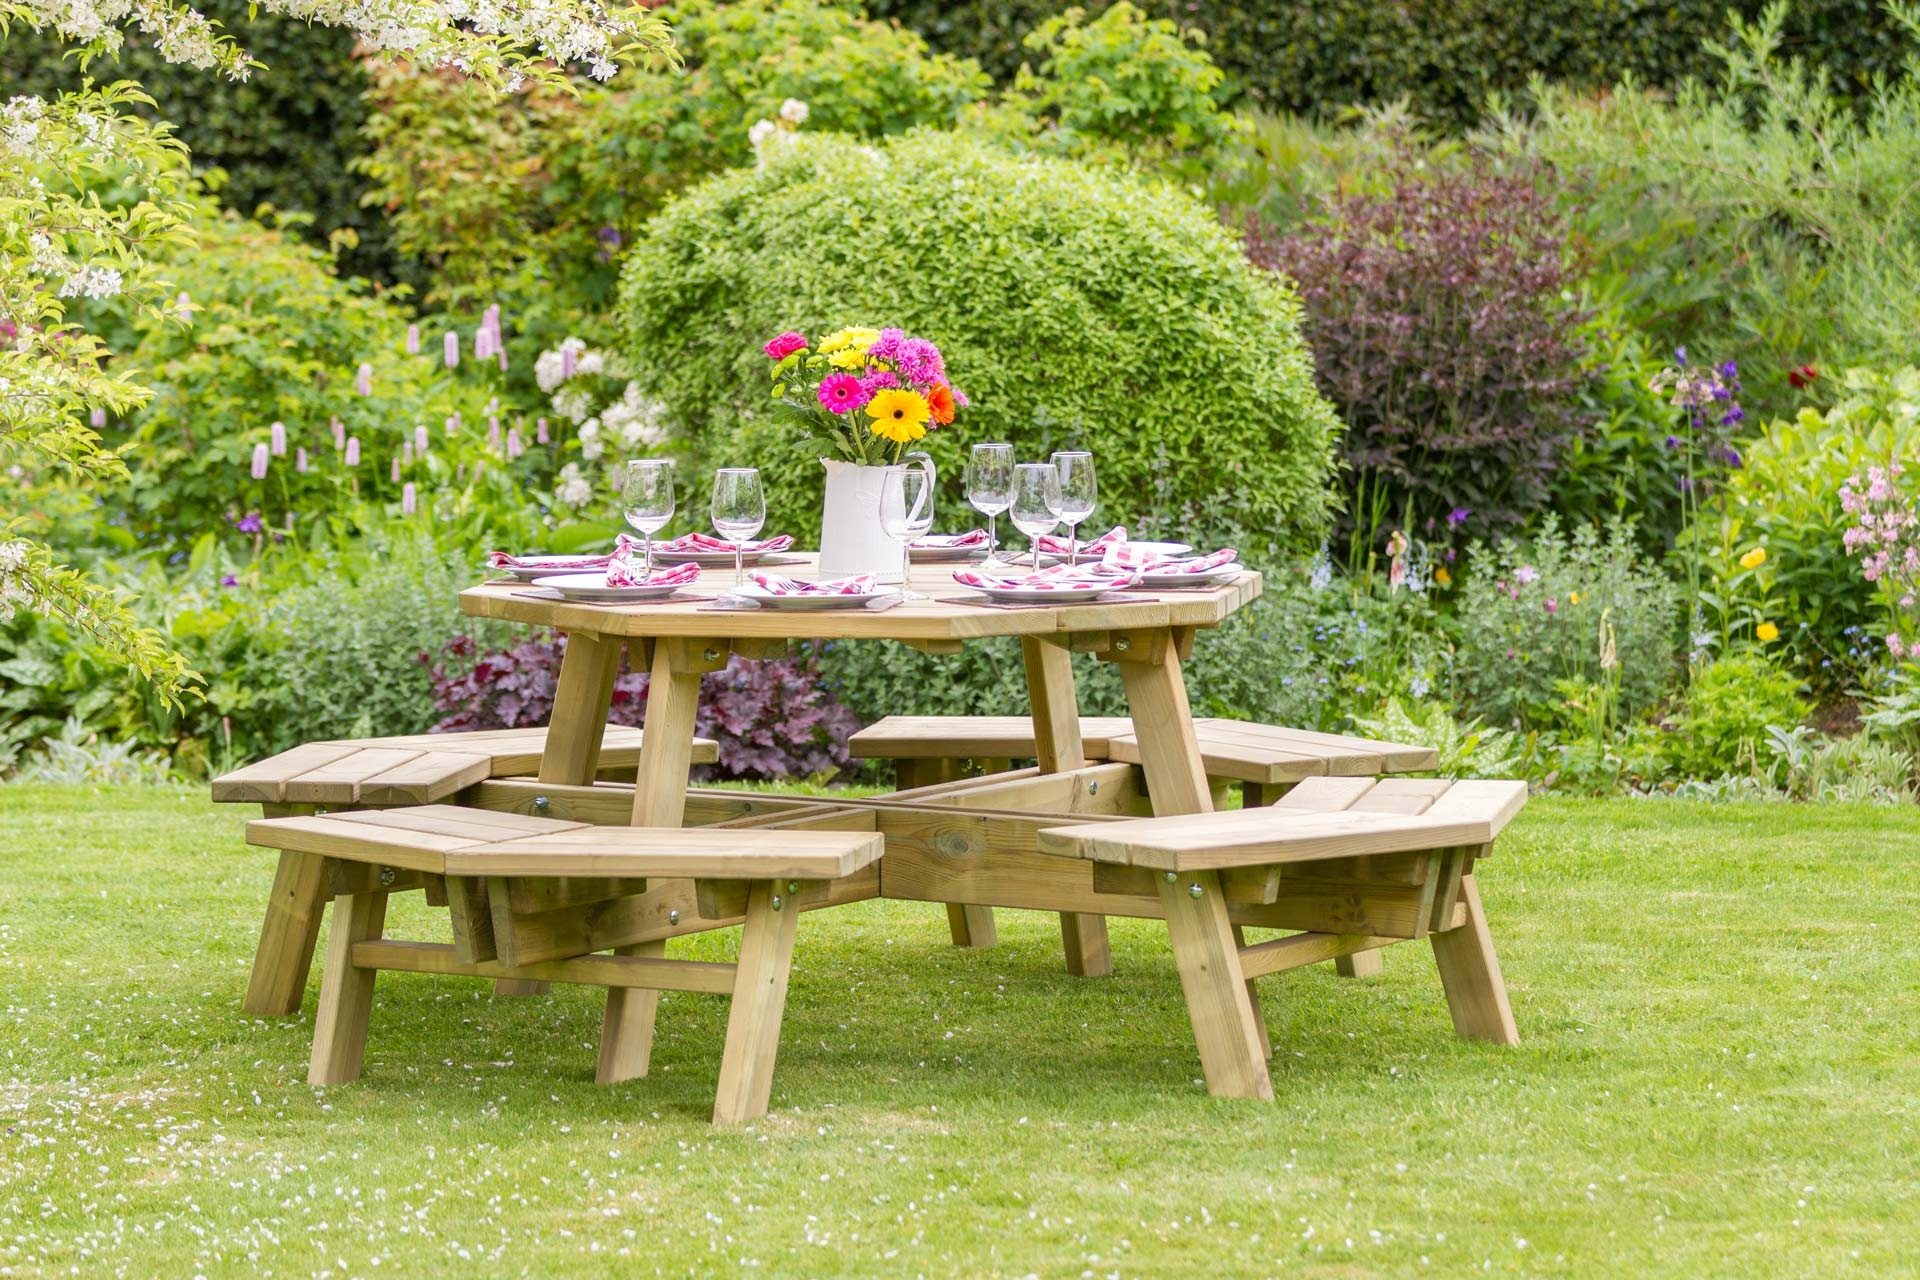 Self assembly wooden garden furniture from Supreme Landscaping Products